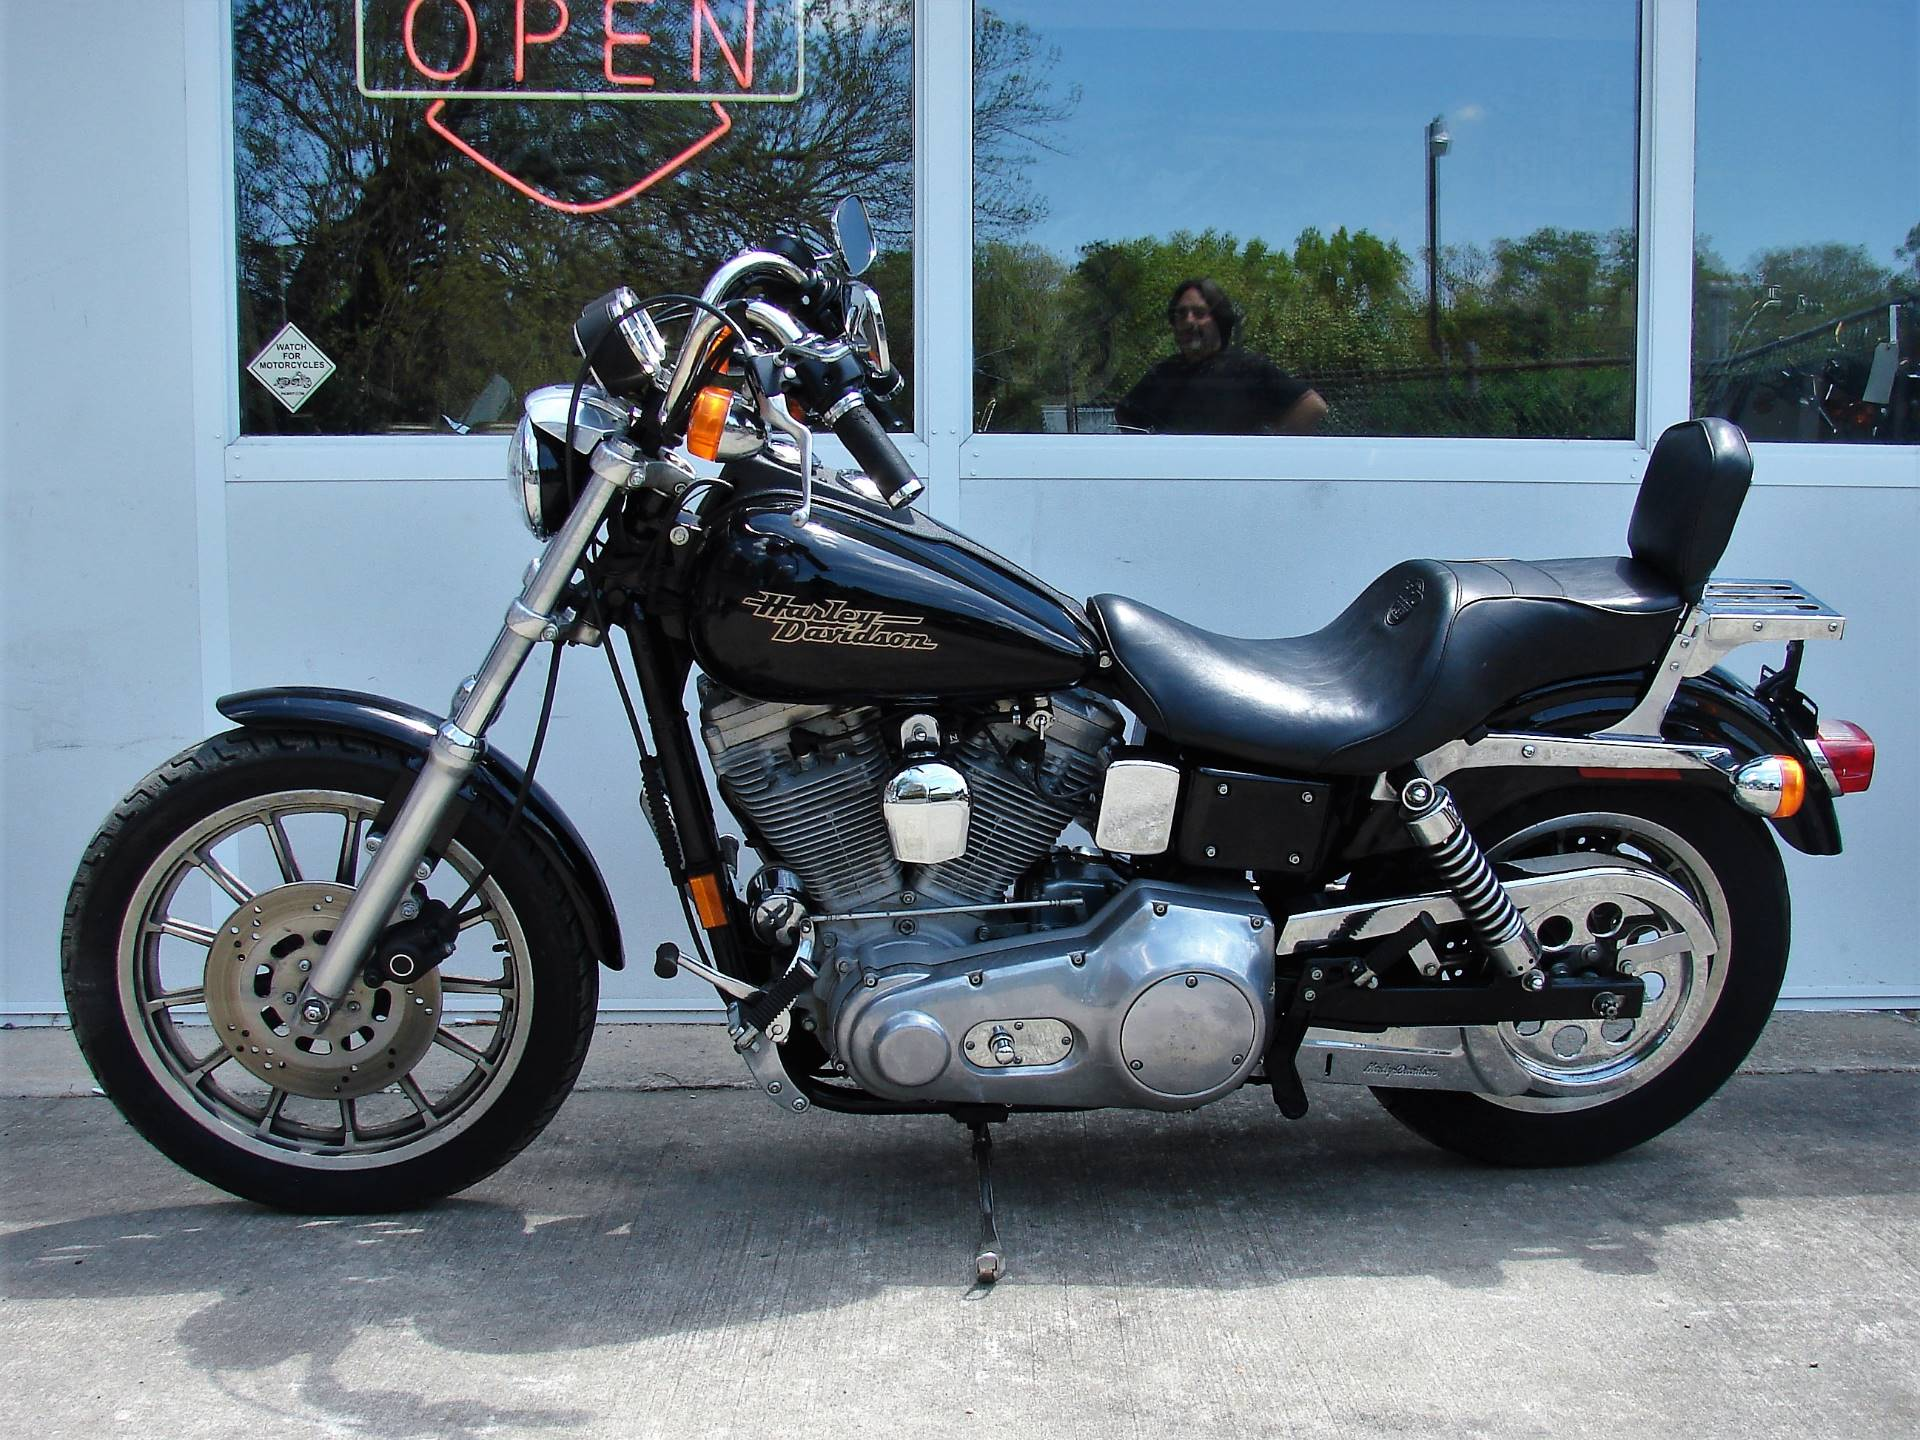 1998 Harley-Davidson Dyna Super Glide  (Black)  w/ Low Miles! in Williamstown, New Jersey - Photo 12